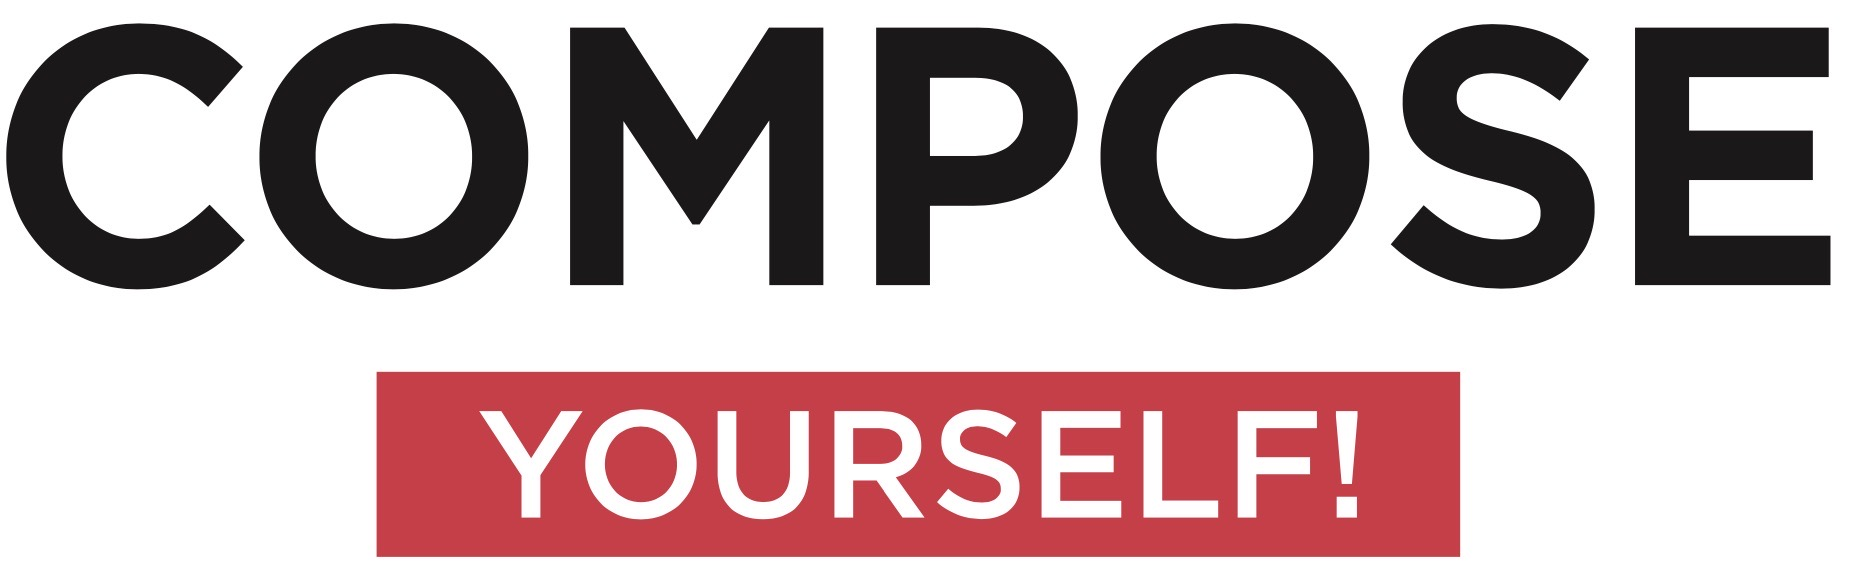 Compose Yourself! logo